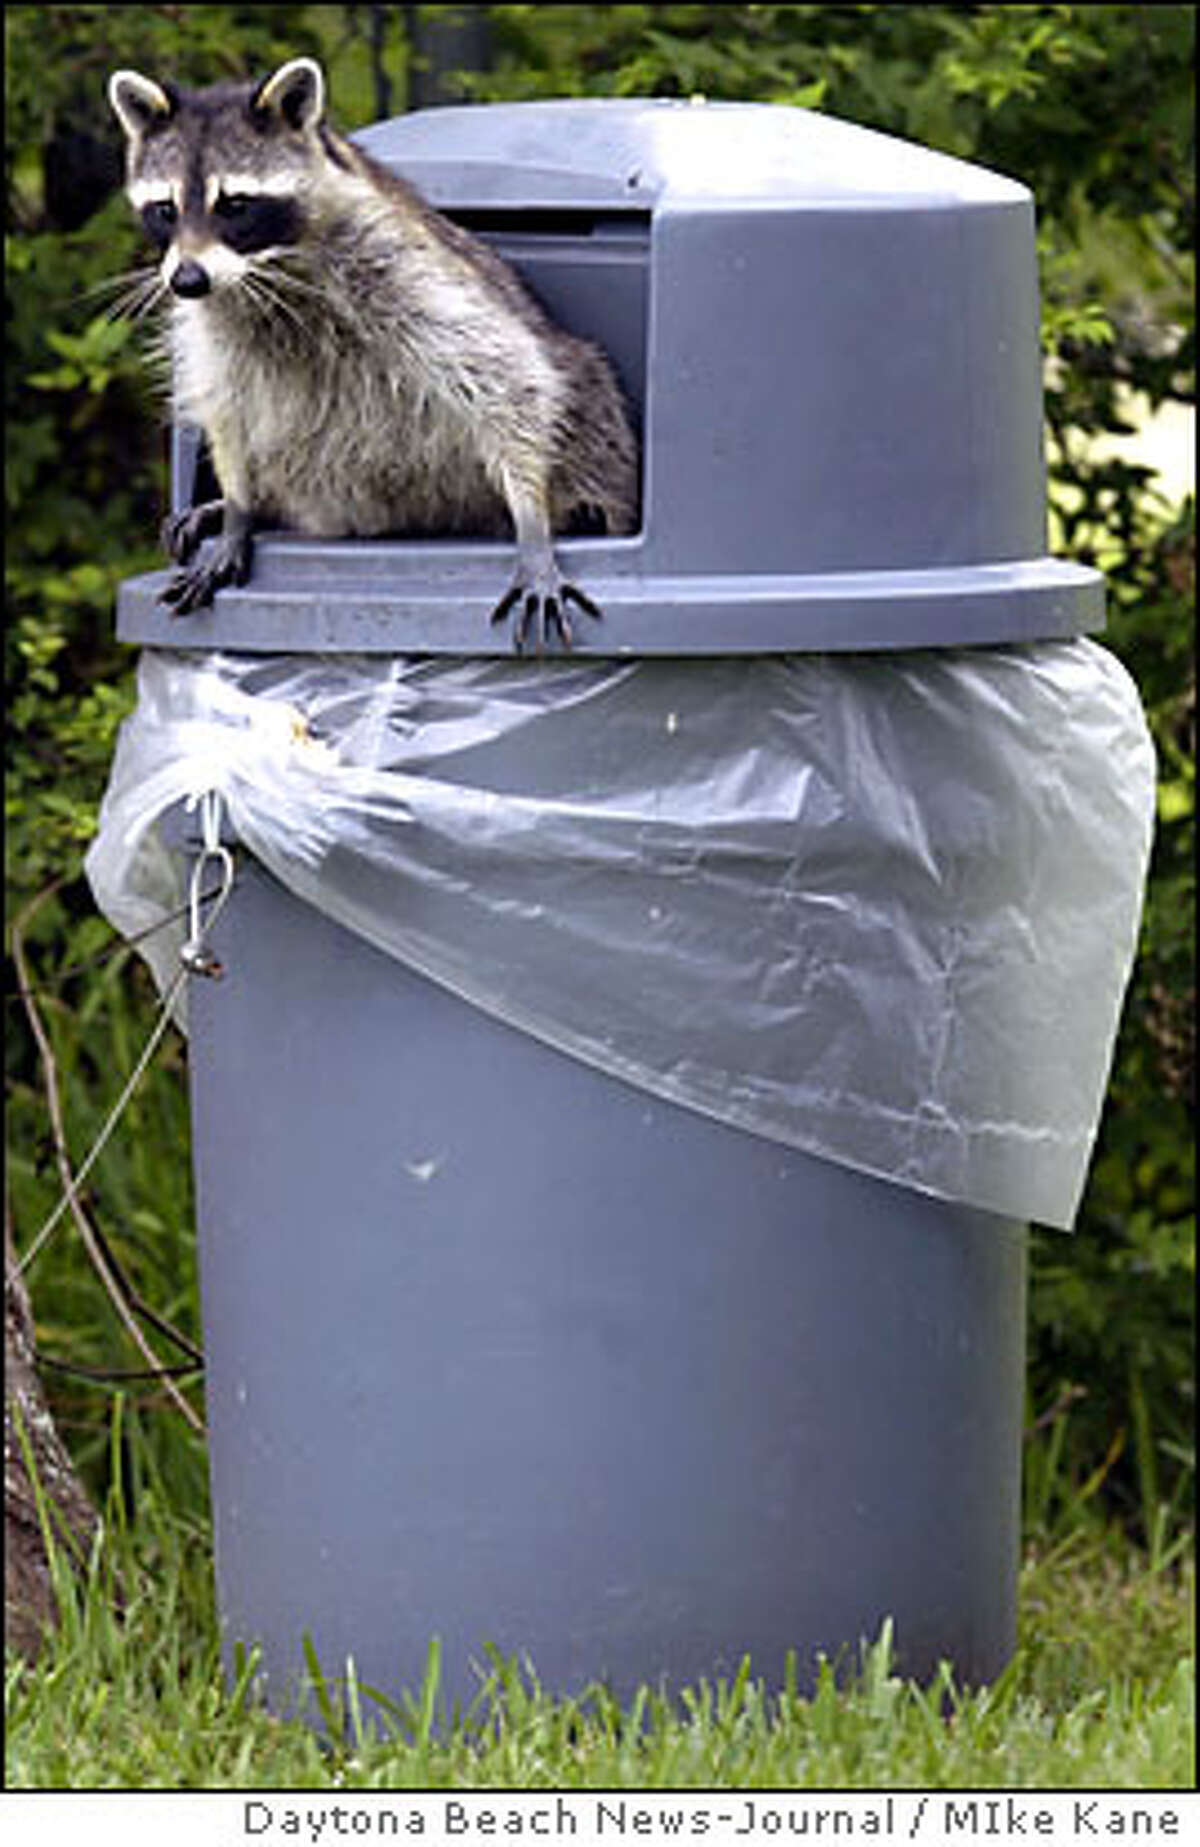 In this file photo a nervous racoon checks its surroundings before ducking back nto a trash can.